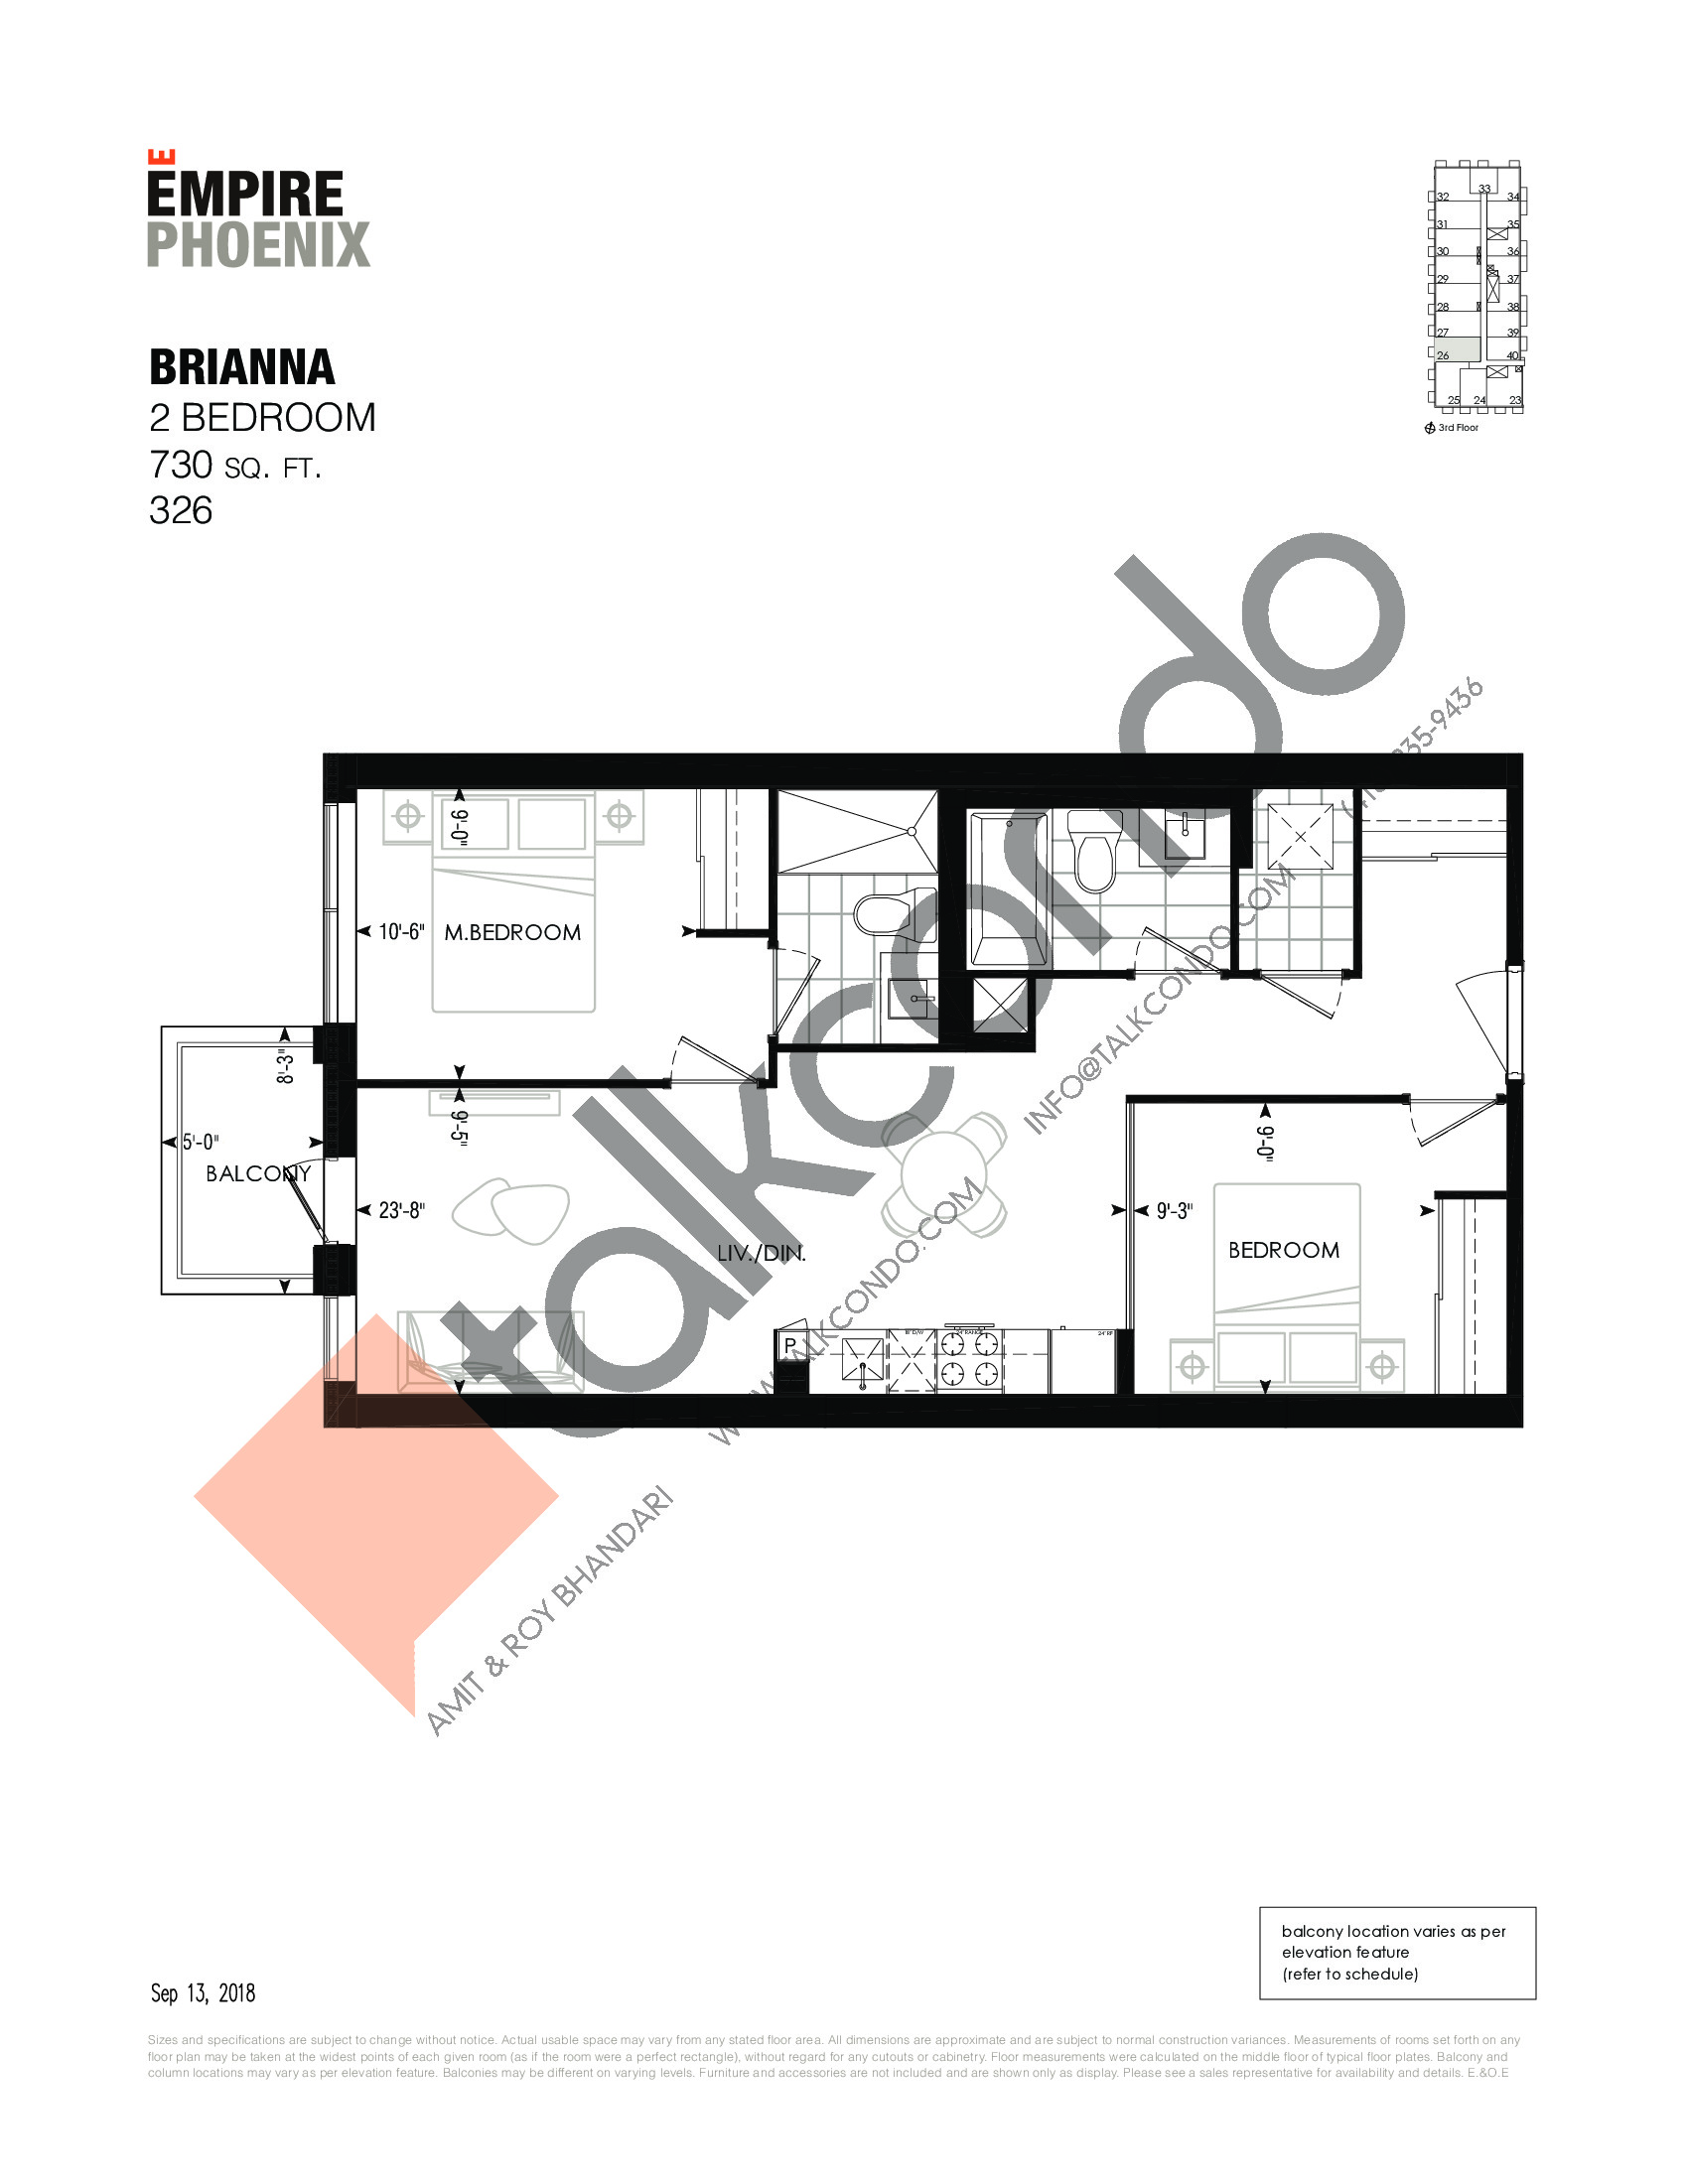 Brianna Floor Plan at Empire Phoenix Phase 2 Condos - 730 sq.ft